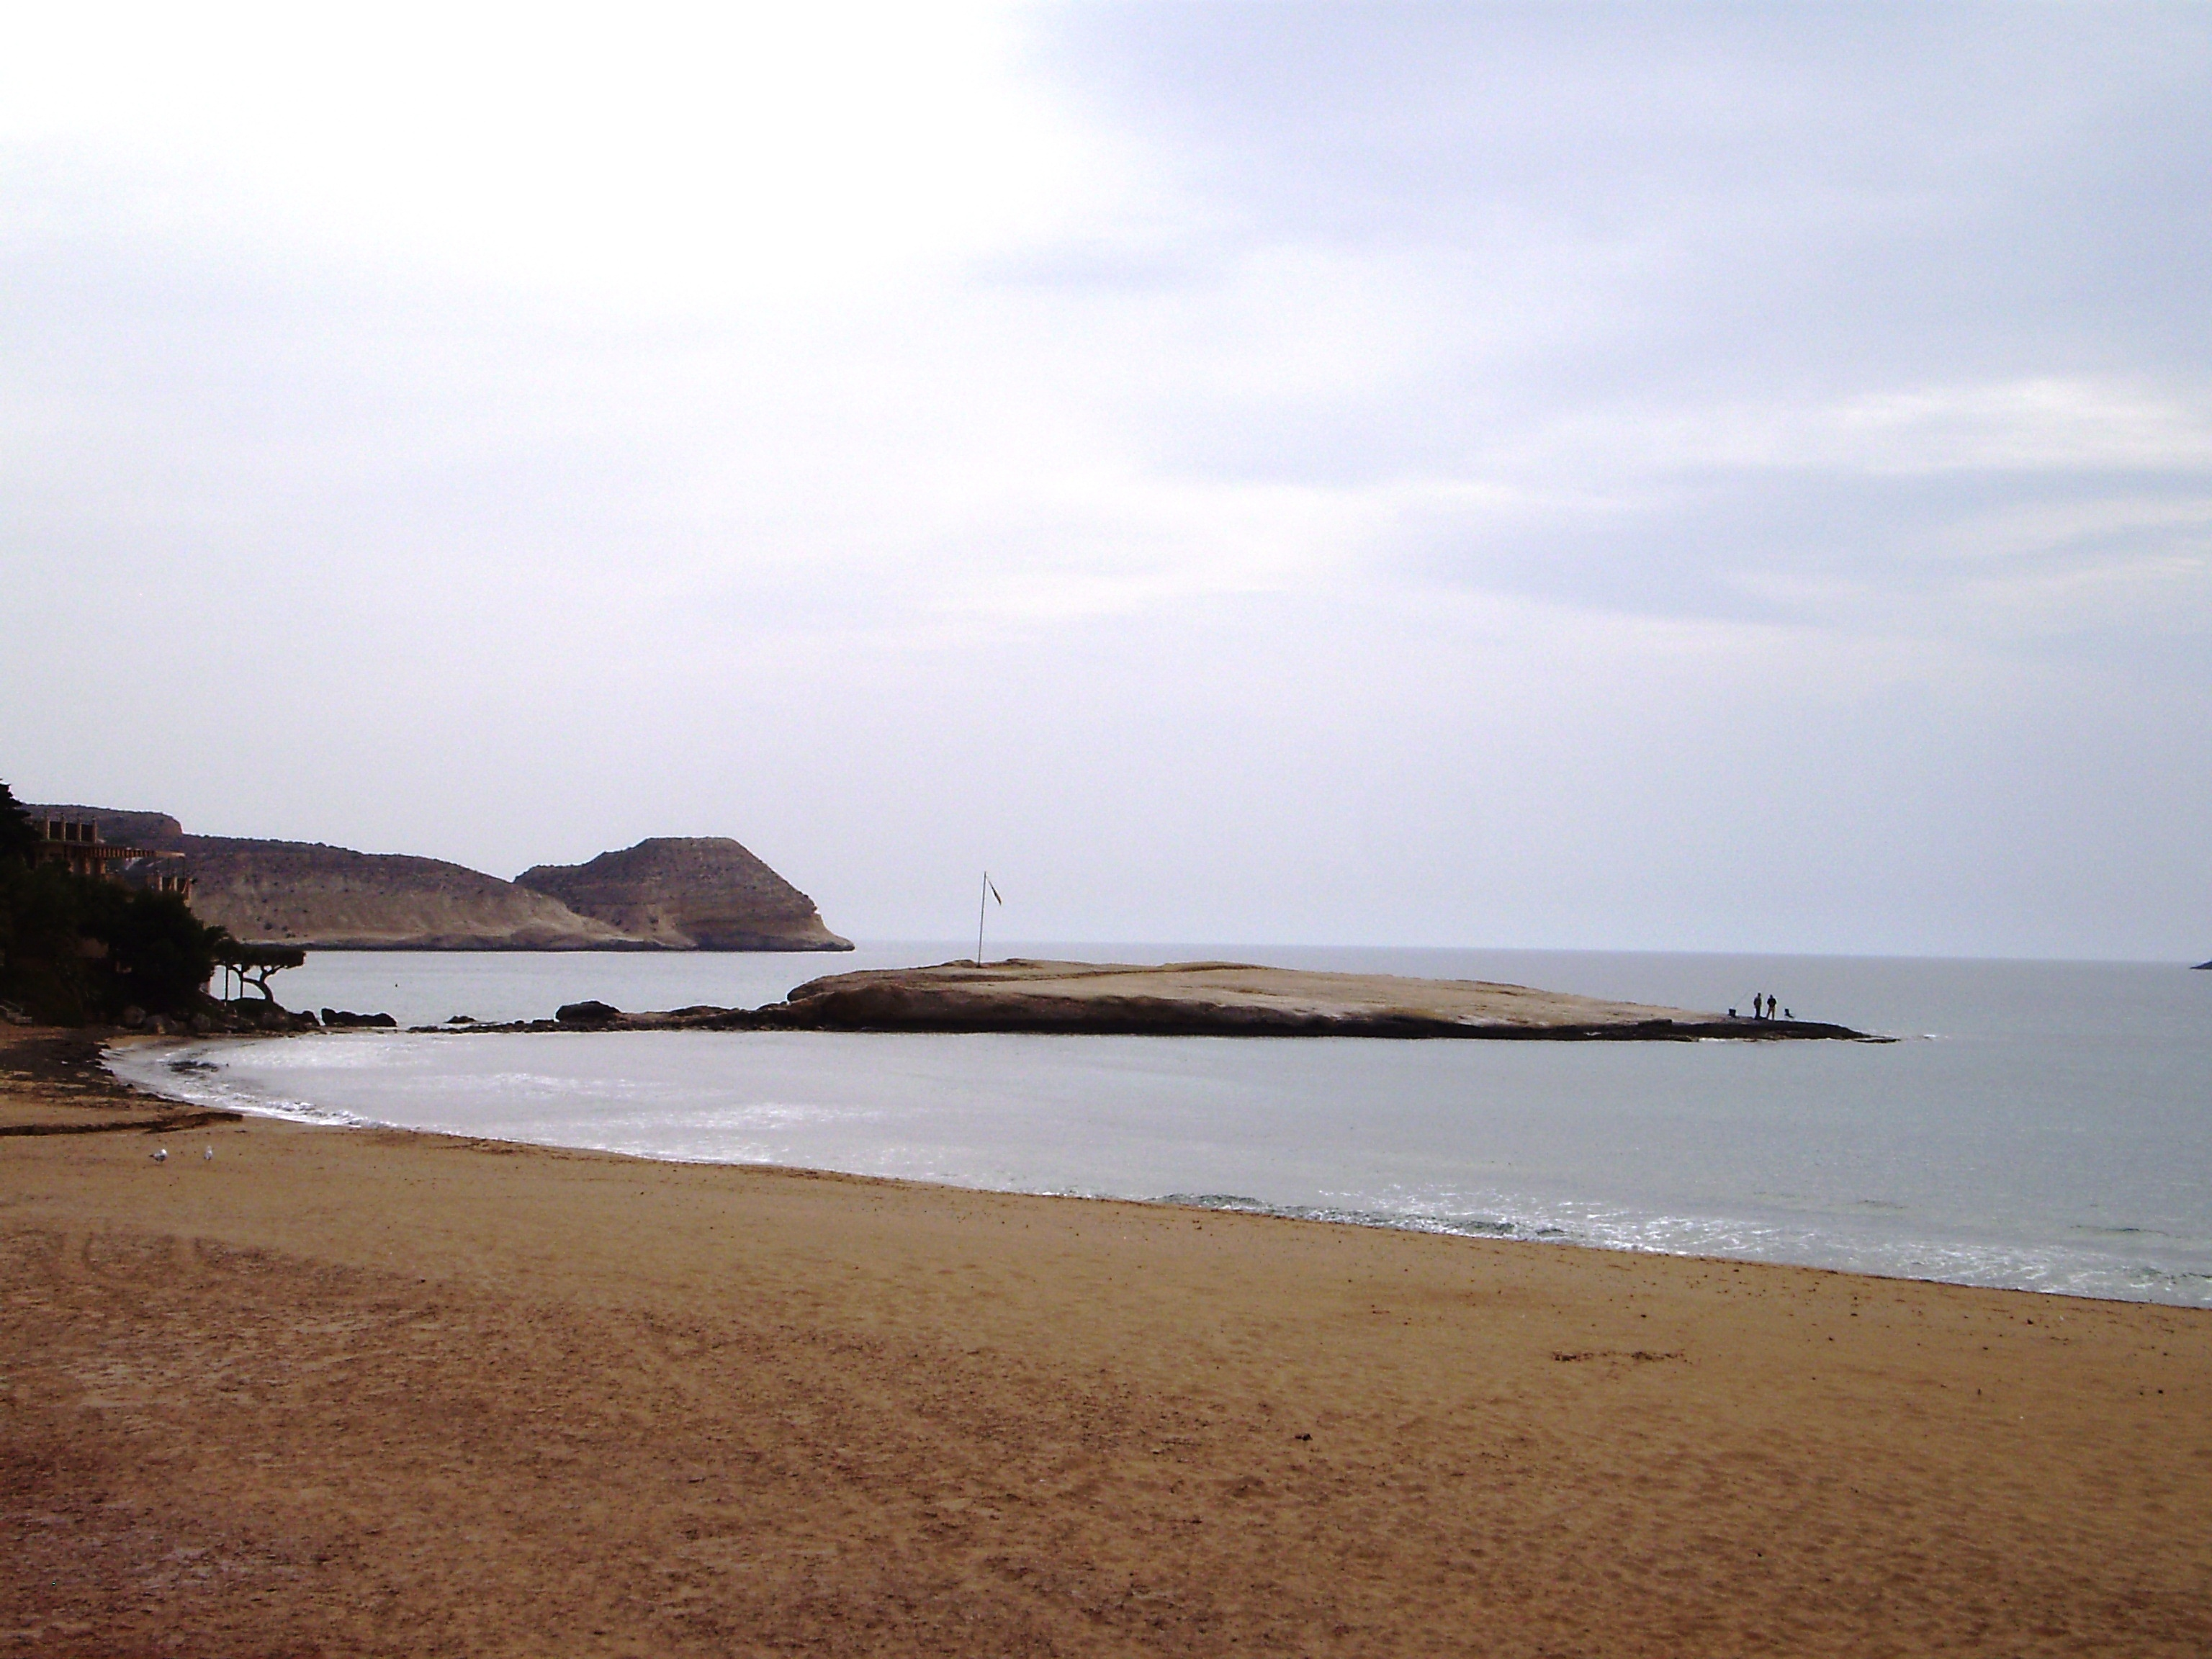 Playa Mar Serena